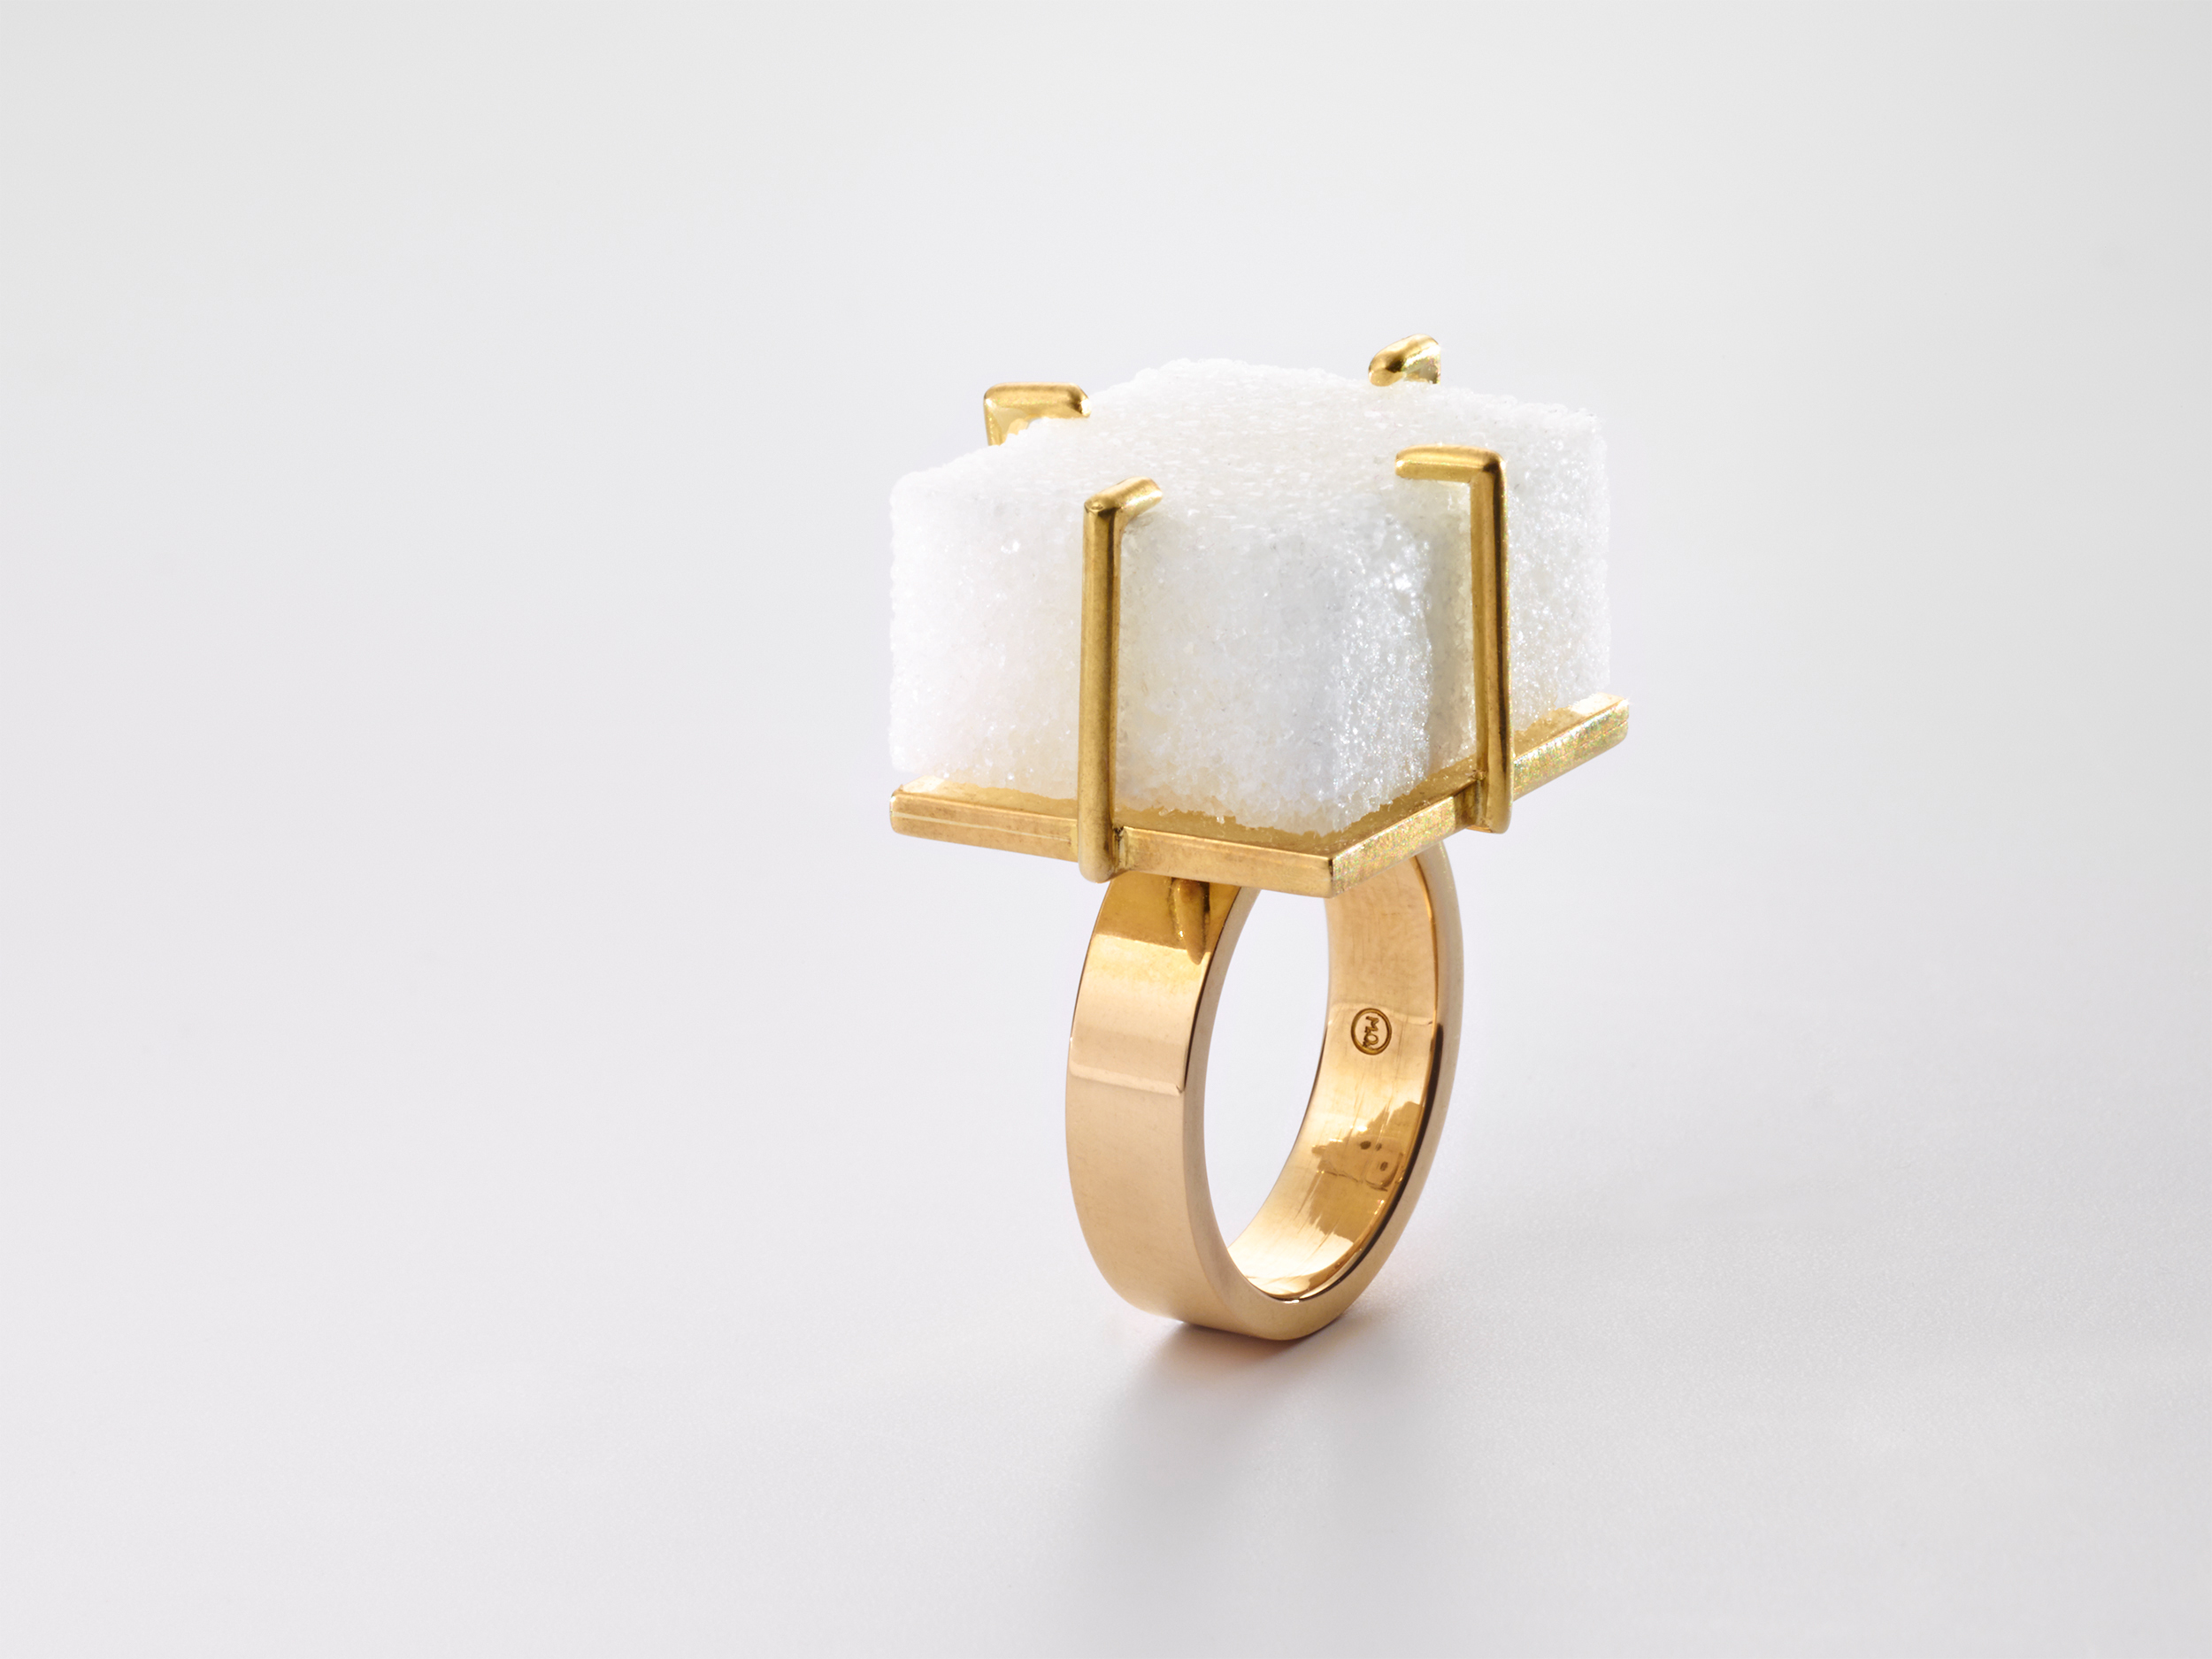 Meret Oppenheim :: Sugar Ring :: Collection :: Jewellery ...